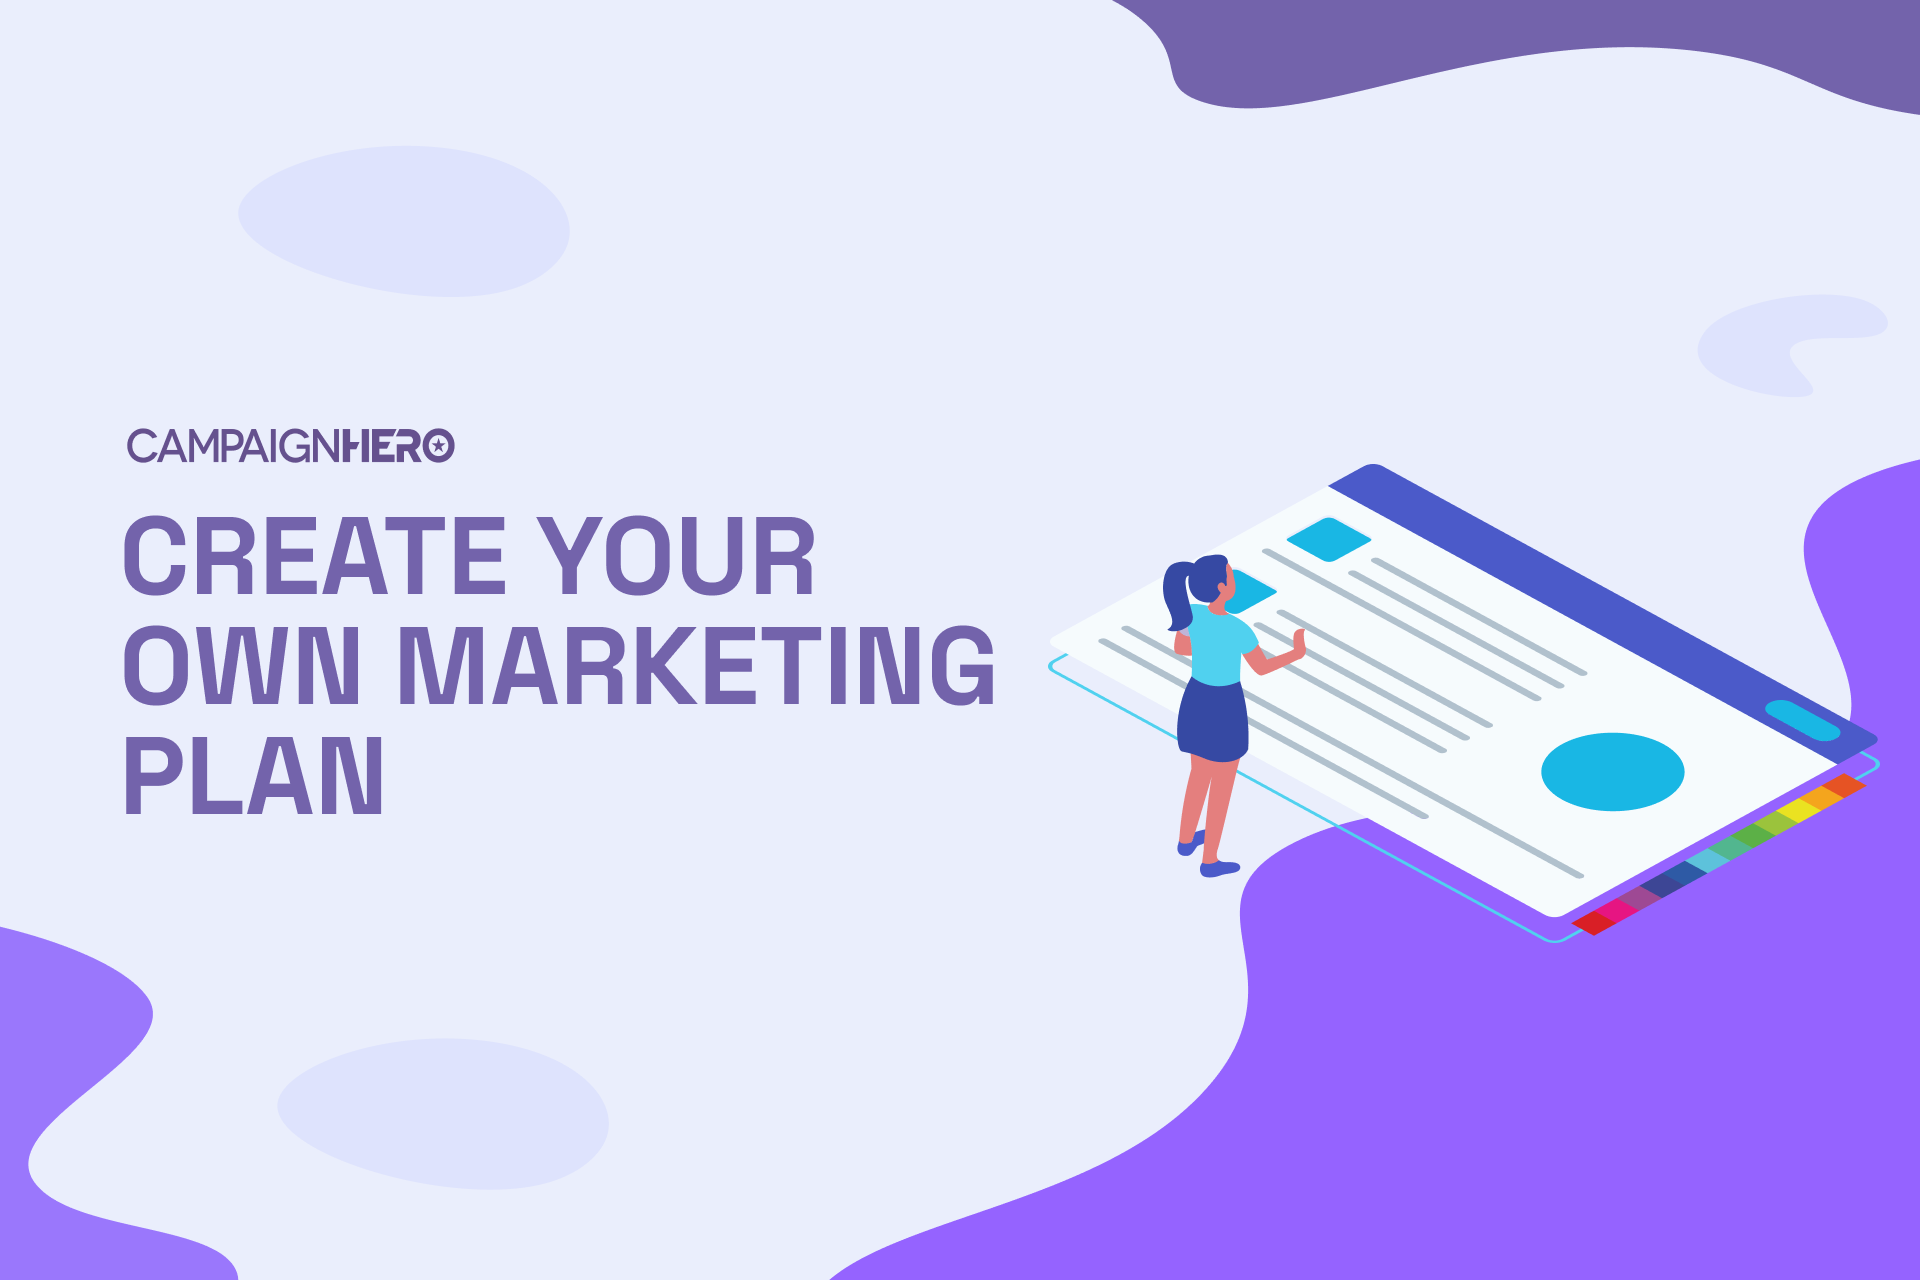 How To Create A Marketing Plan For Your Small Business [Free Template]